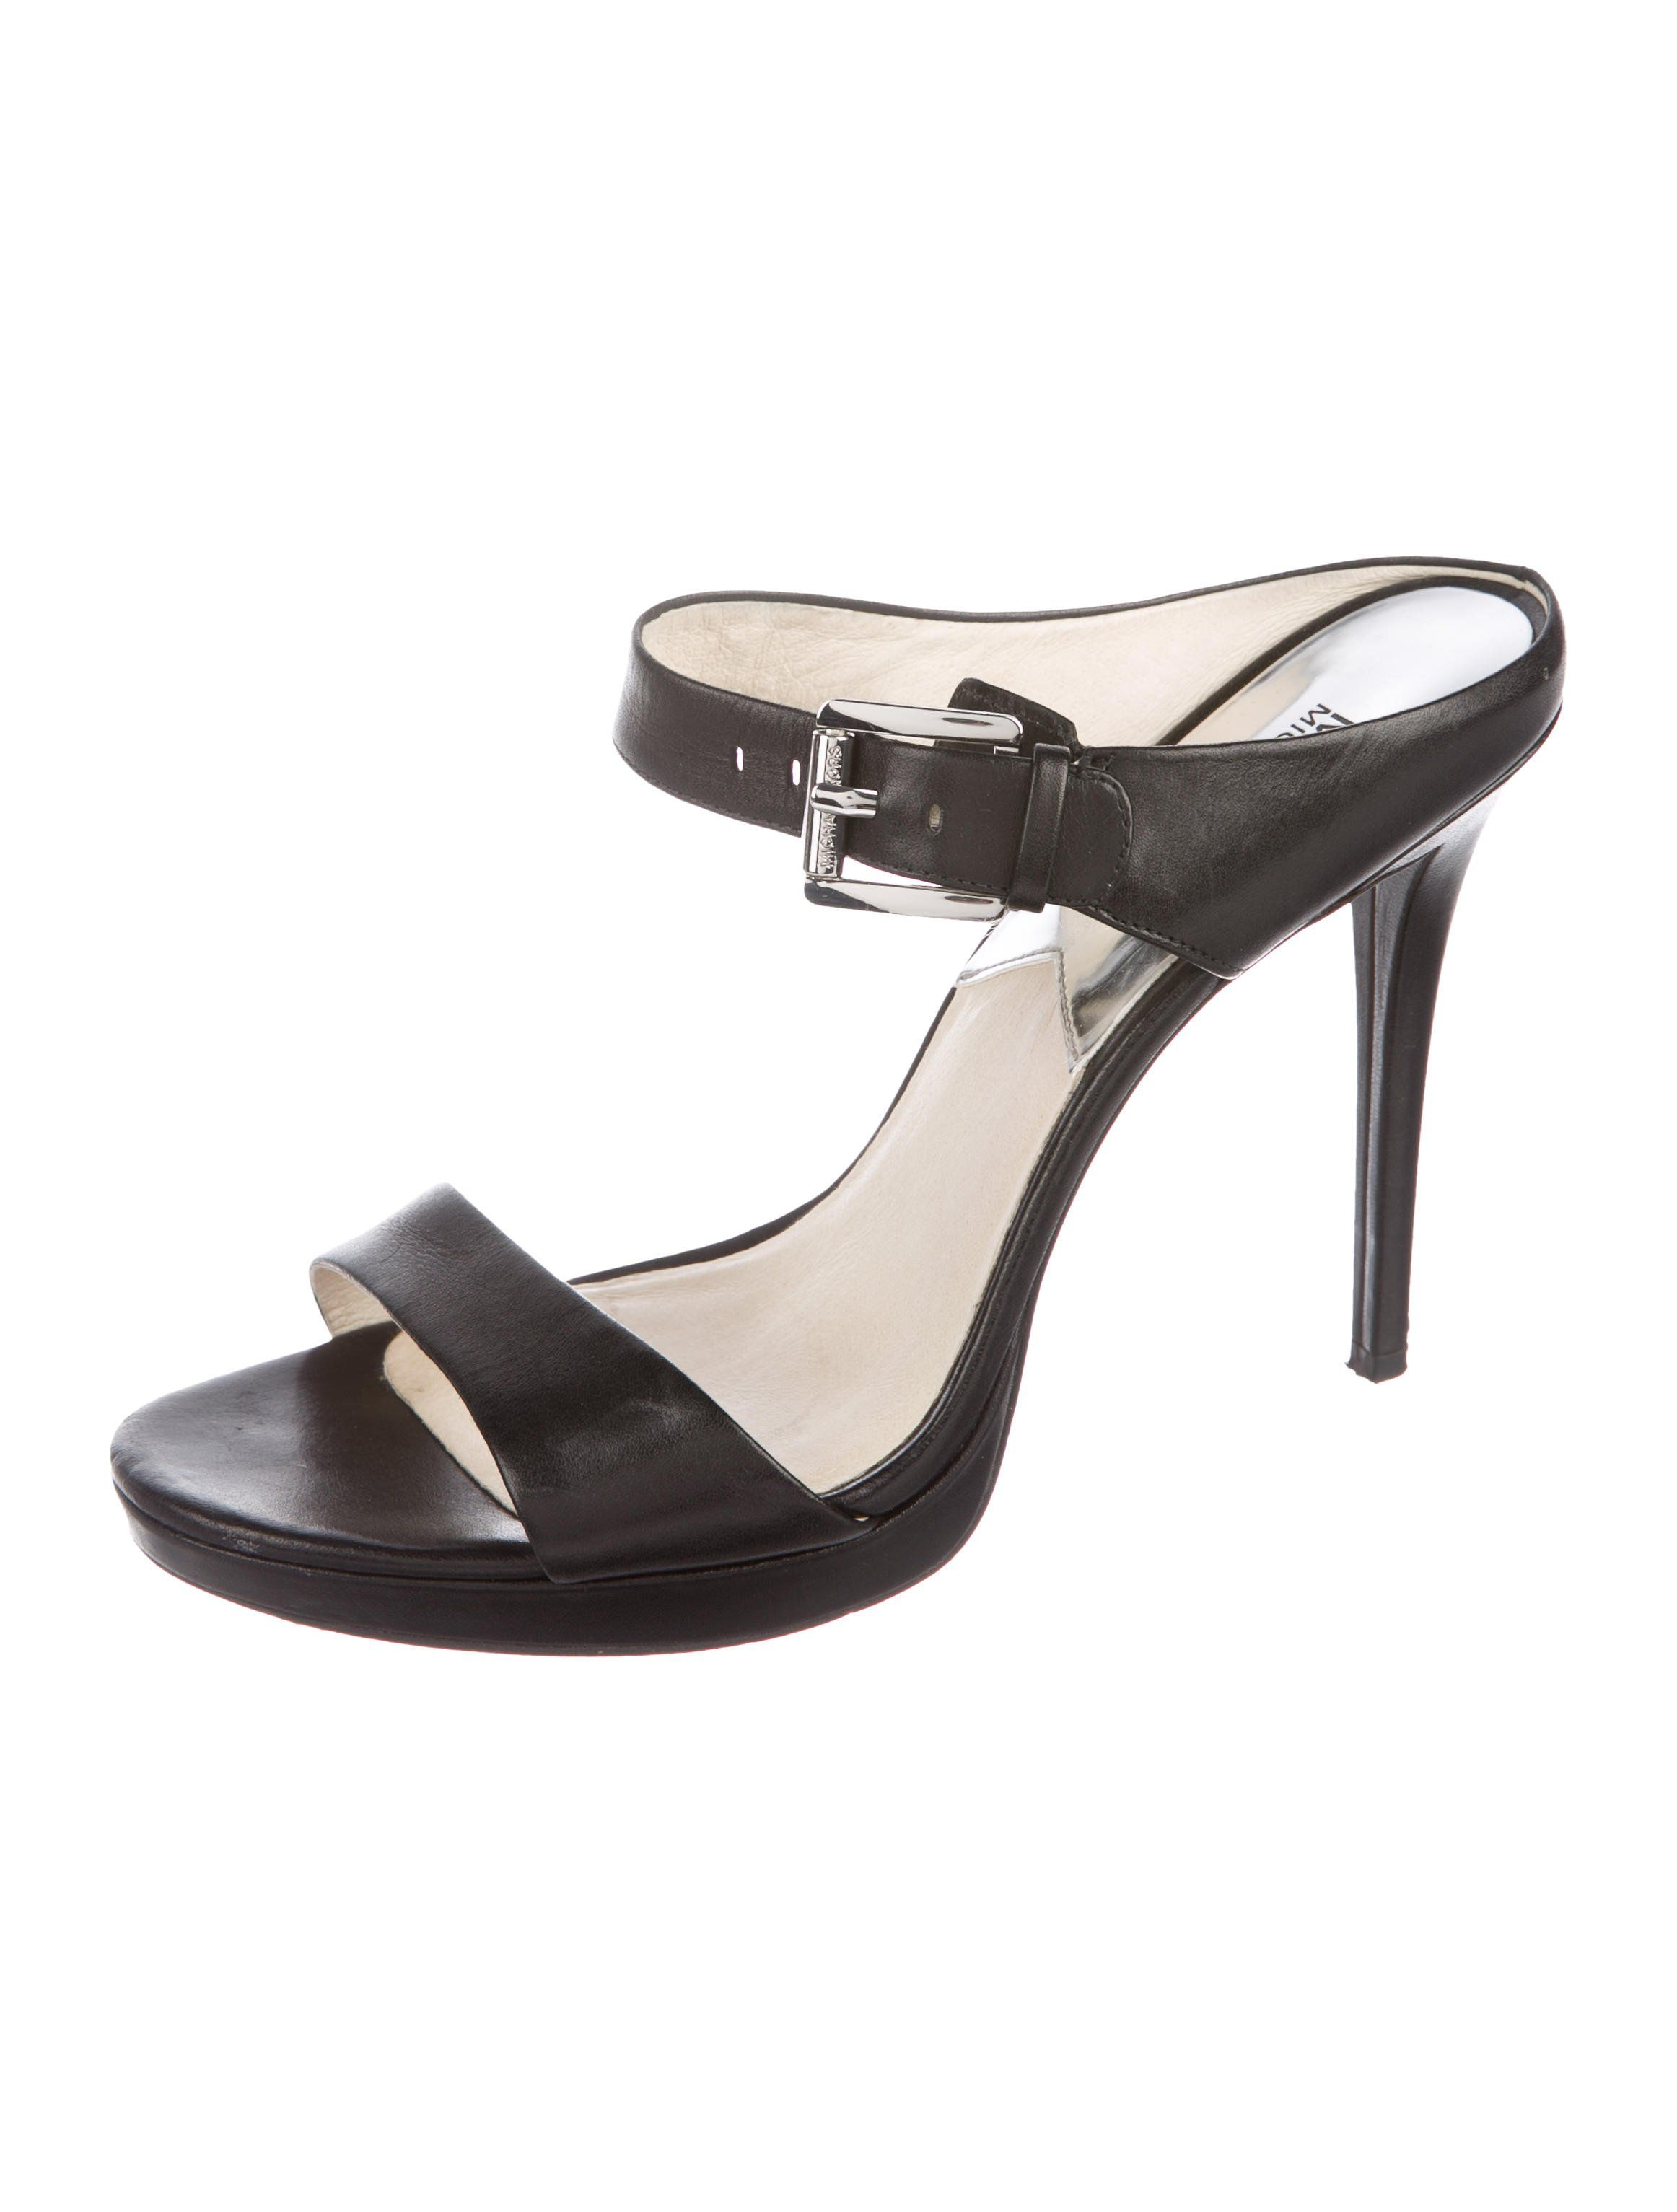 6a0d37a39db3 Black leather Michael Michael Kors ankle strap sandals with tonal stitching  and covered heels. Includes box.